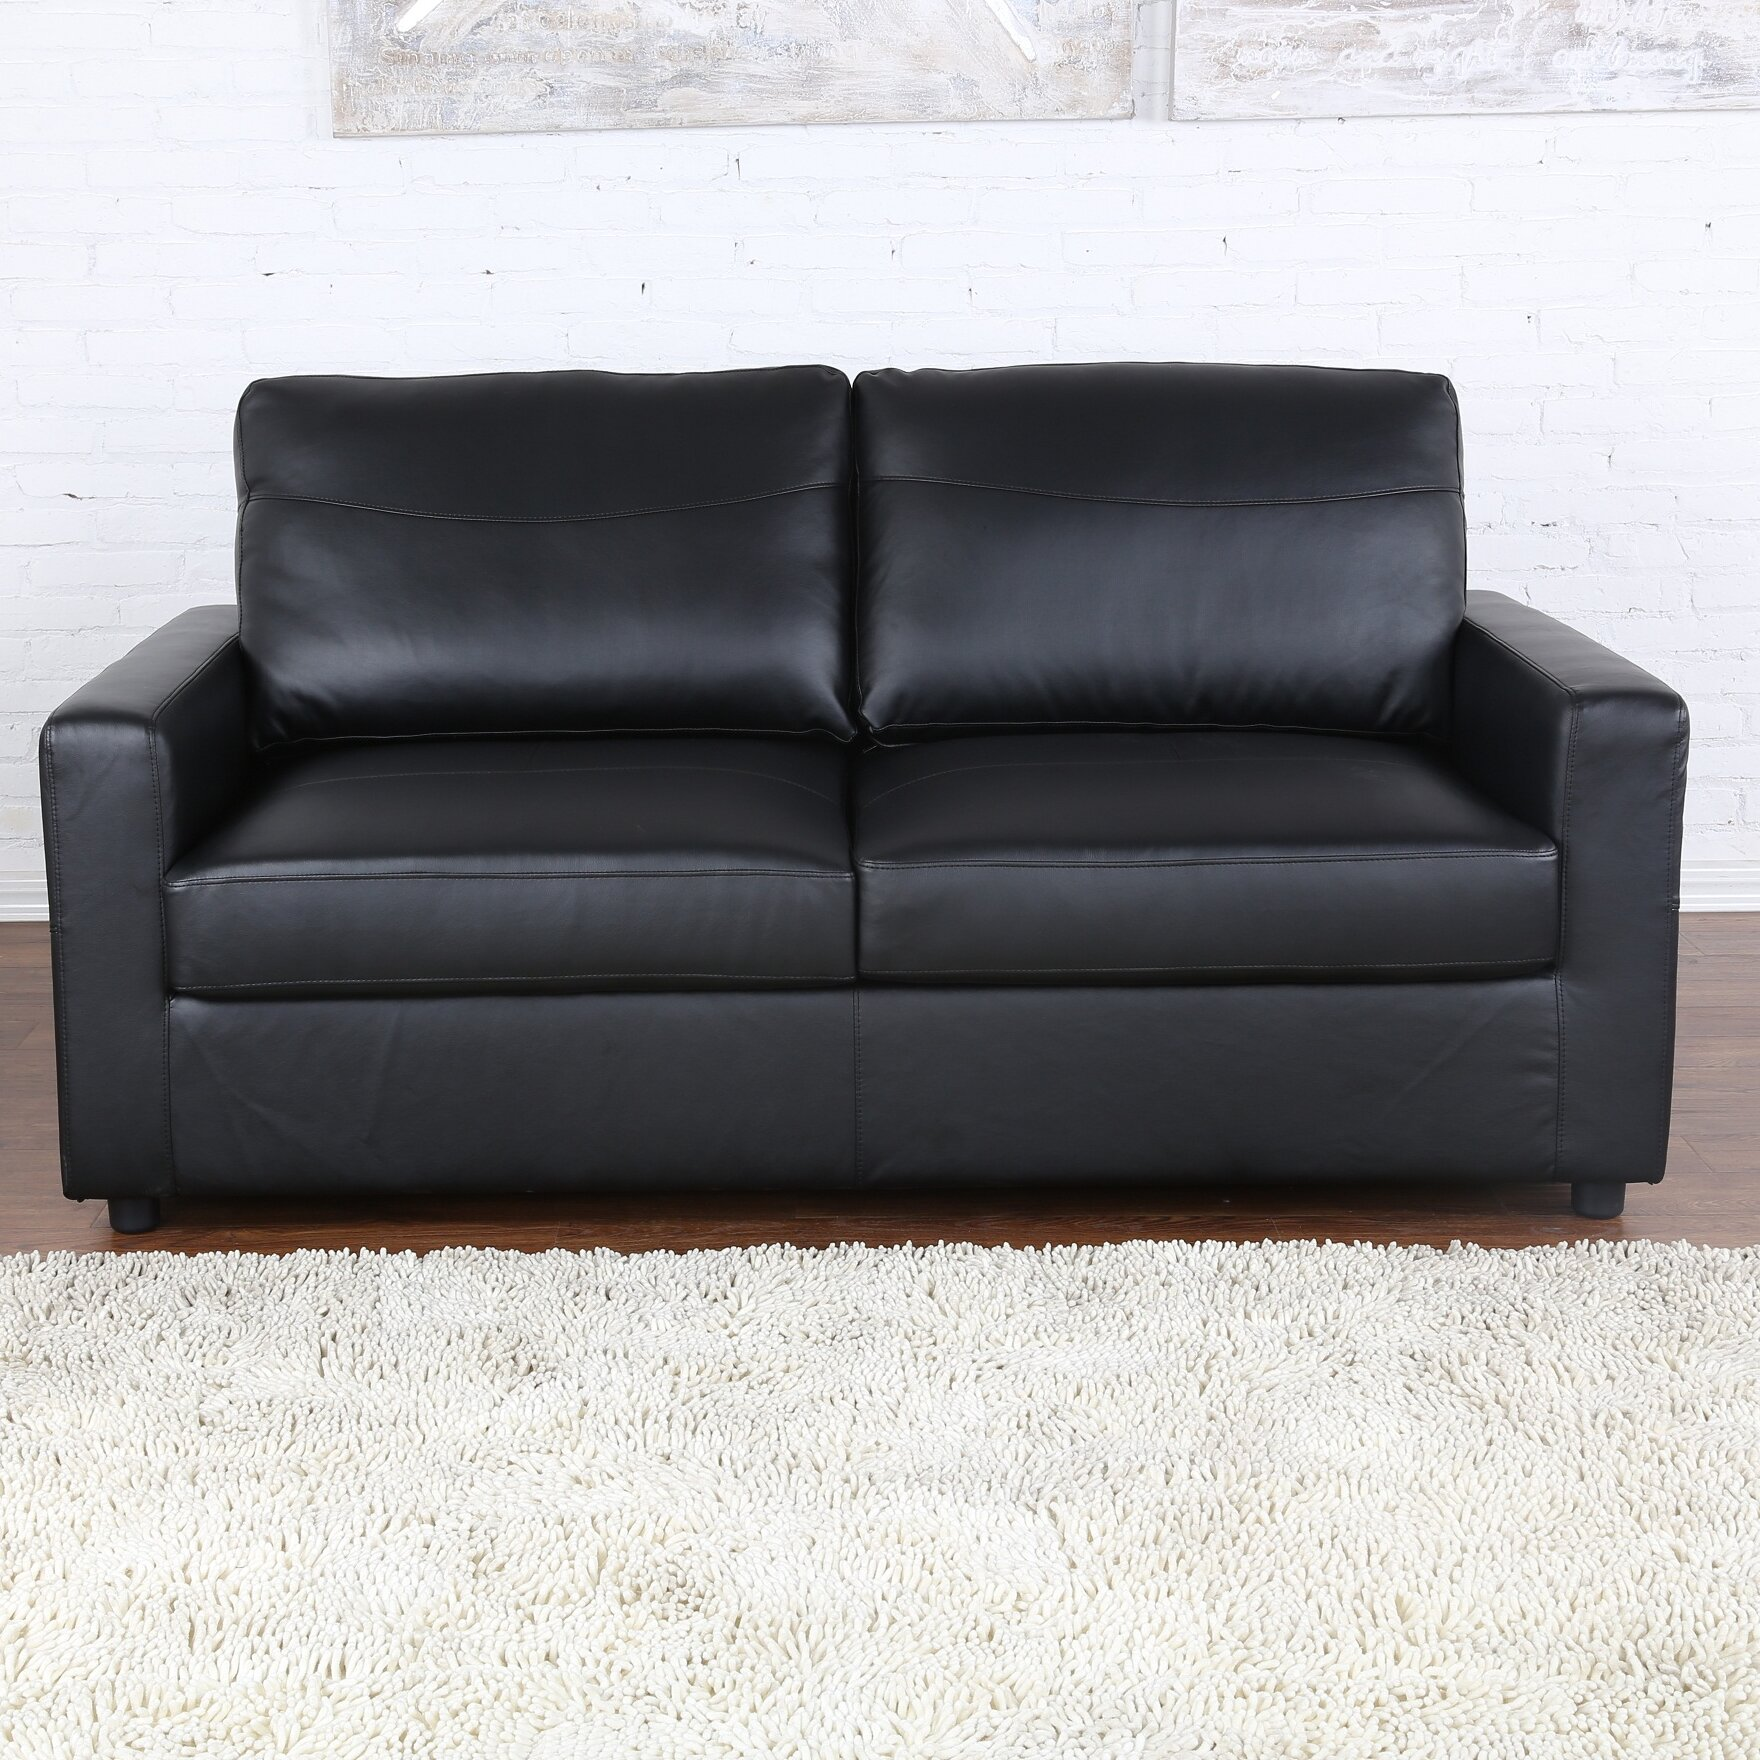 Madison home usa sleeper pull out sleeper sofa ebay for Buy sofa online usa